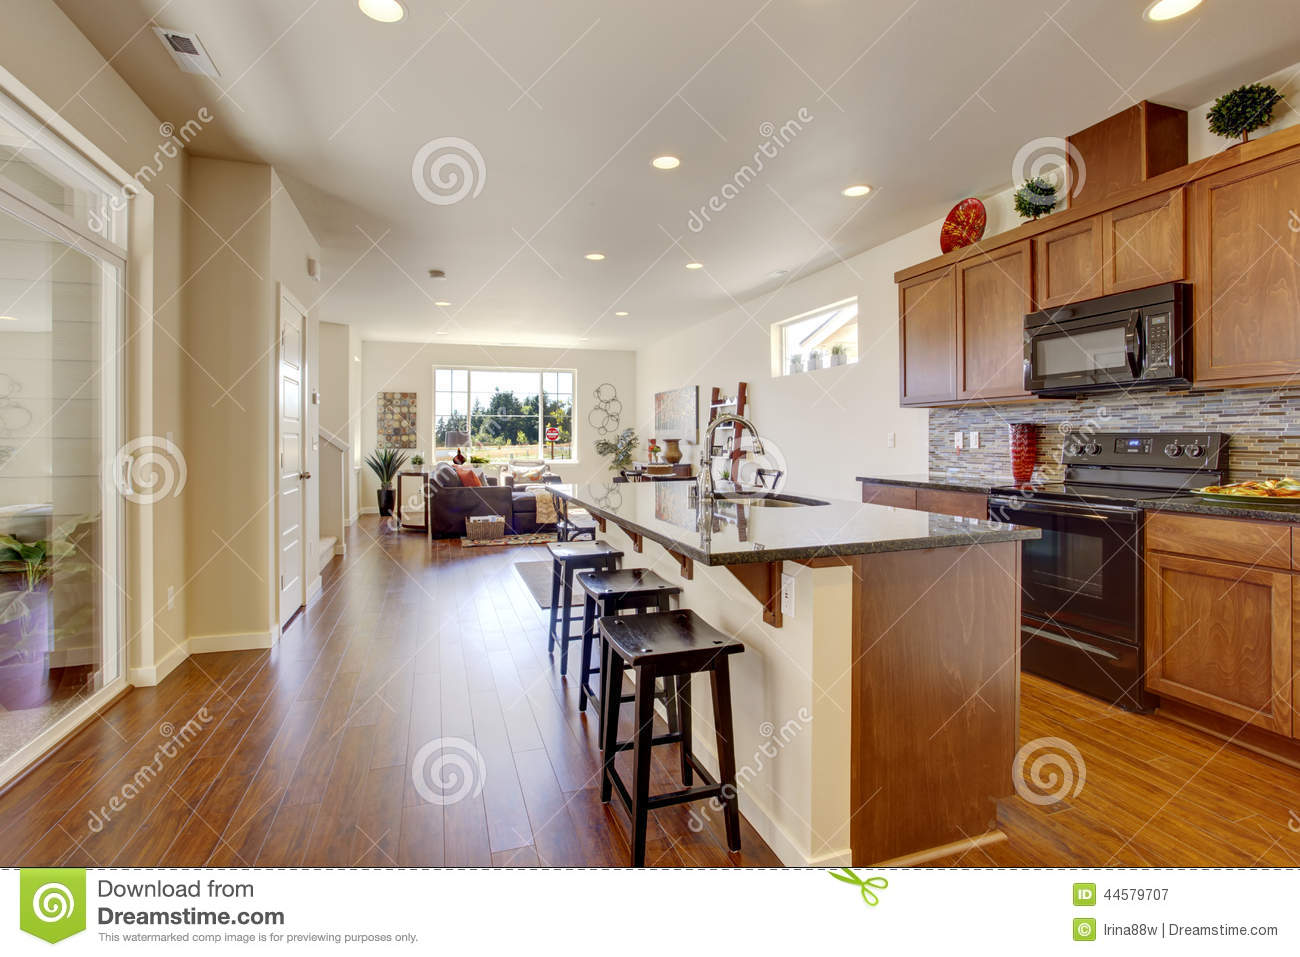 House interior with open floor plan kitchen room wiht for House plans with kitchen in back of house